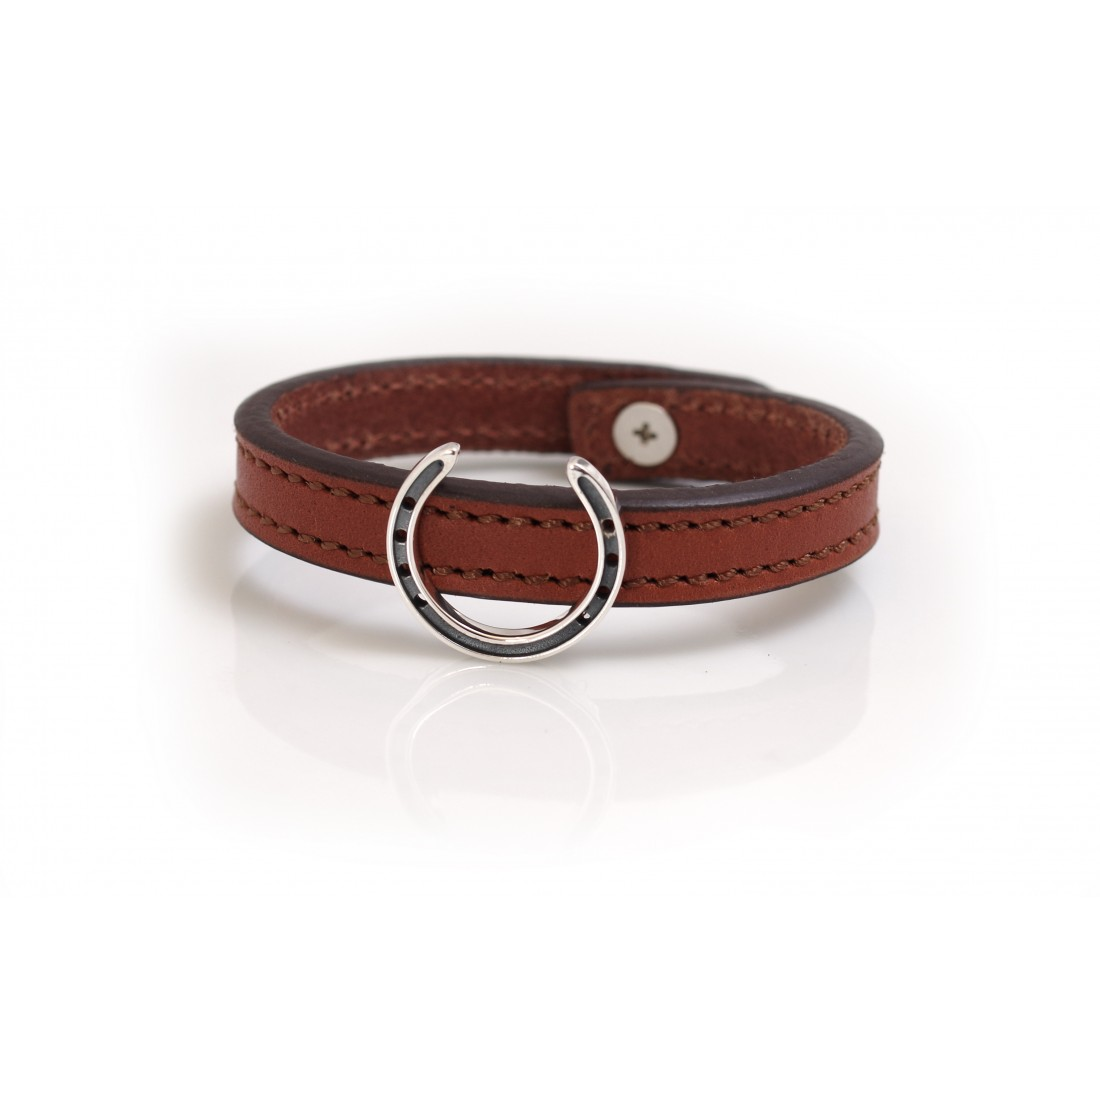 Exclusive Sterling Silver Horseshoe With Leather Bracelet